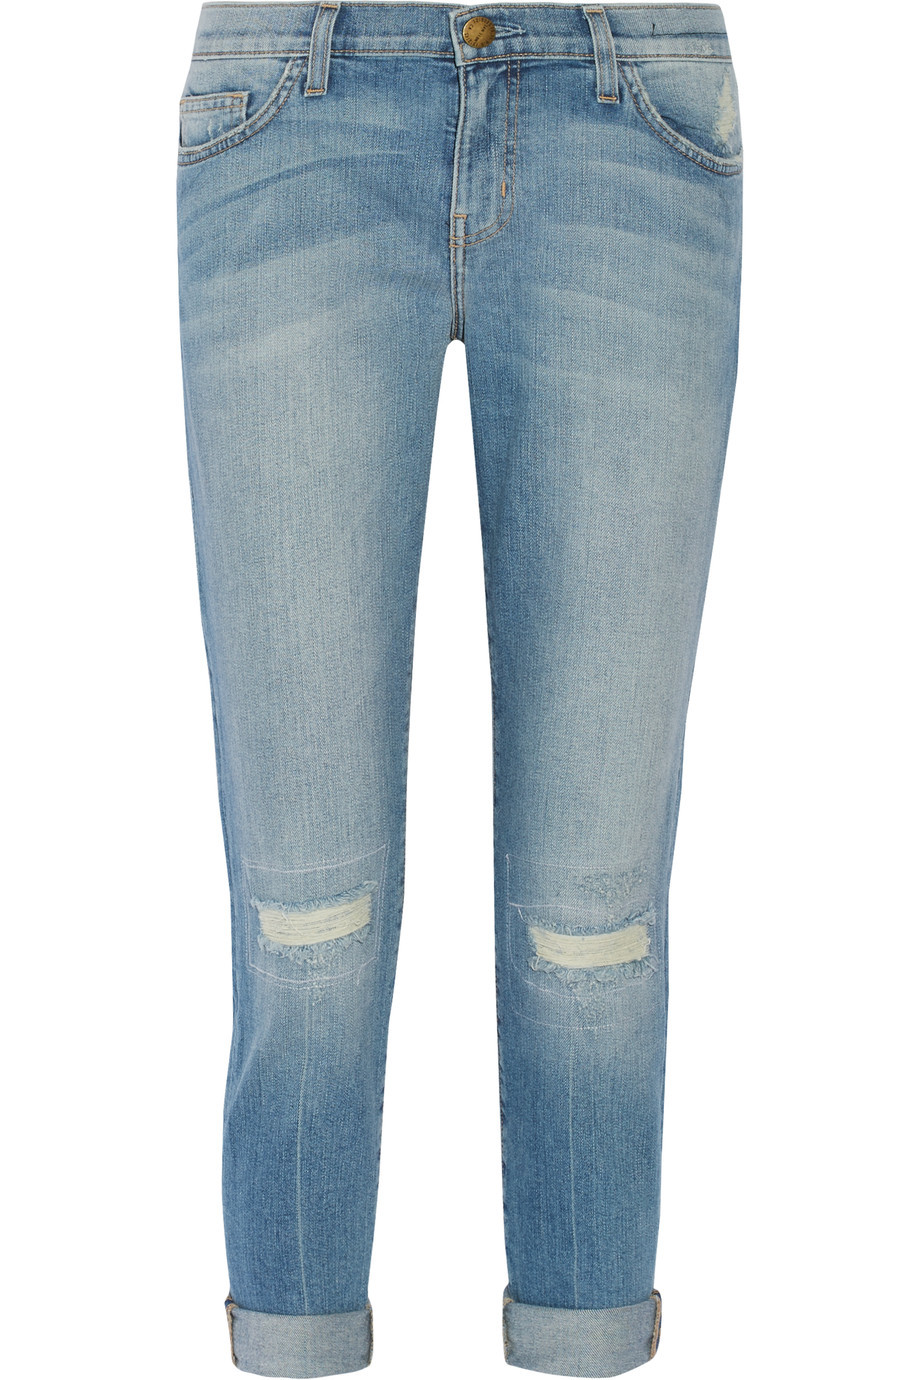 The Stiletto Distressed Mid Rise Skinny Jeans Light Denim - style: skinny leg; length: standard; pattern: plain; pocket detail: traditional 5 pocket; waist: mid/regular rise; predominant colour: denim; occasions: casual; fibres: cotton - stretch; jeans detail: whiskering, shading down centre of thigh, rips; jeans & bottoms detail: turn ups; texture group: denim; pattern type: fabric; season: s/s 2016; wardrobe: basic